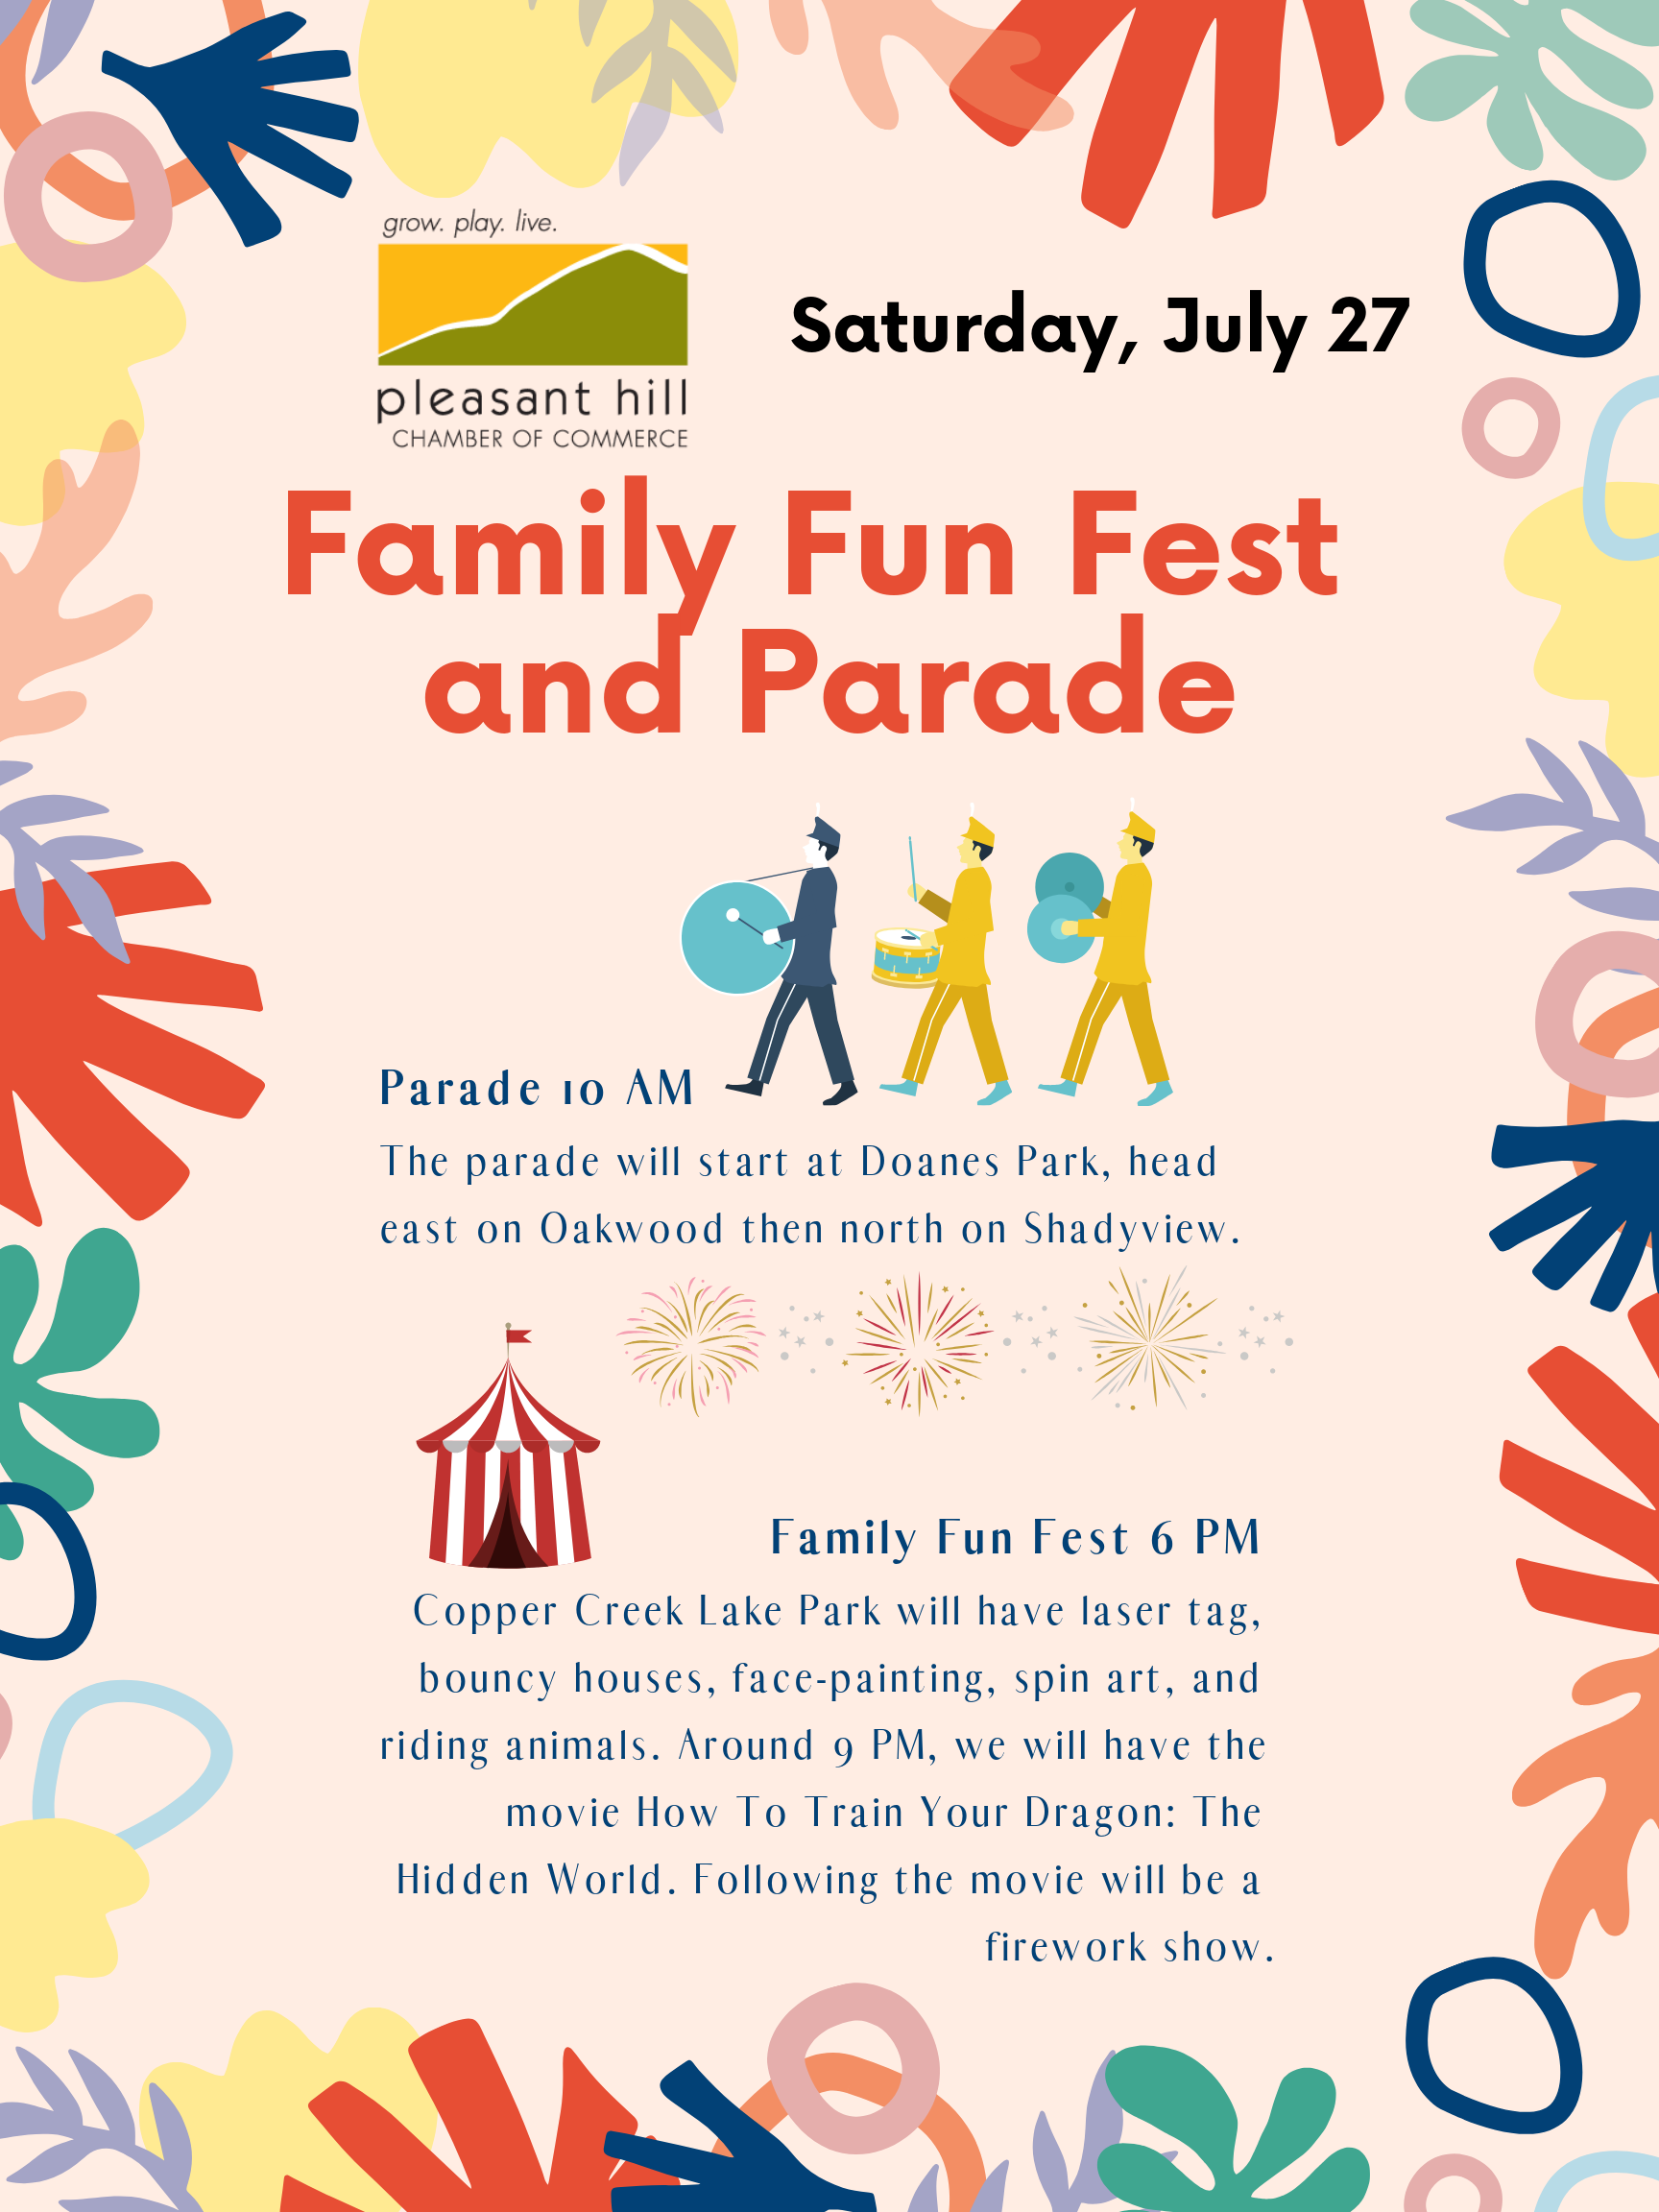 Family Fun Fest and Parade